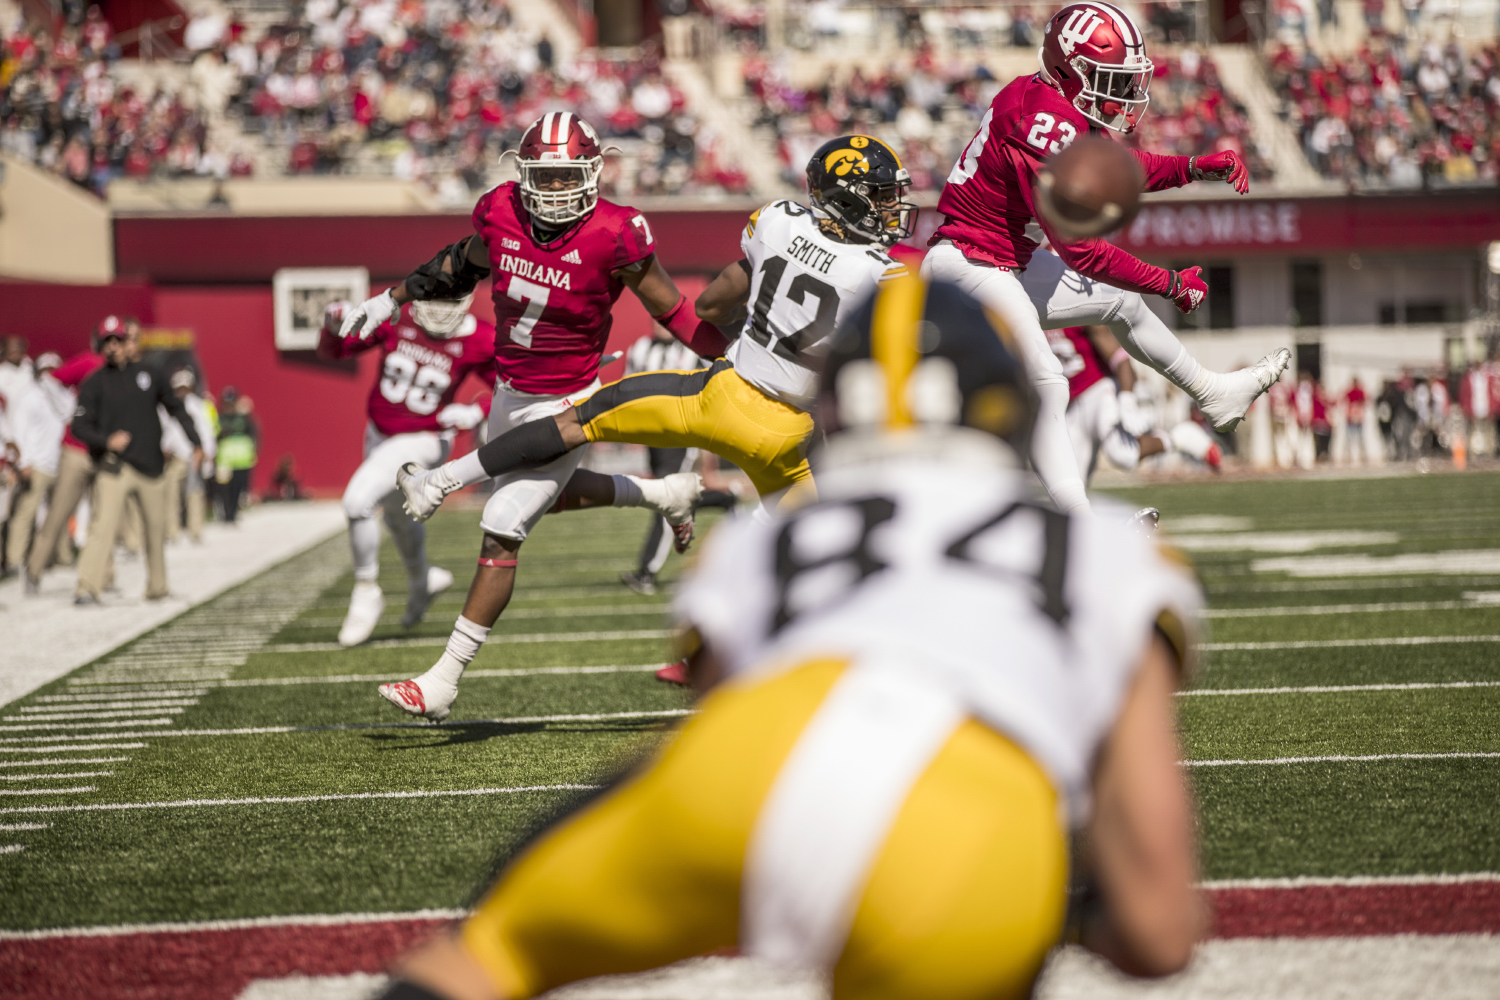 Iowa+wide+receiver+Nick+Easley+%2884%29+makes+a+diving+catch+on+a+deflected+pass+for+a+touchdown+during+Iowa%27s+game+against+Indiana+at+Memorial+Stadium+in+Bloomington+on+Saturday%2C+October+13%2C+2018.+The+Hawkeyes+defeated+the+Hoosiers+42-16.